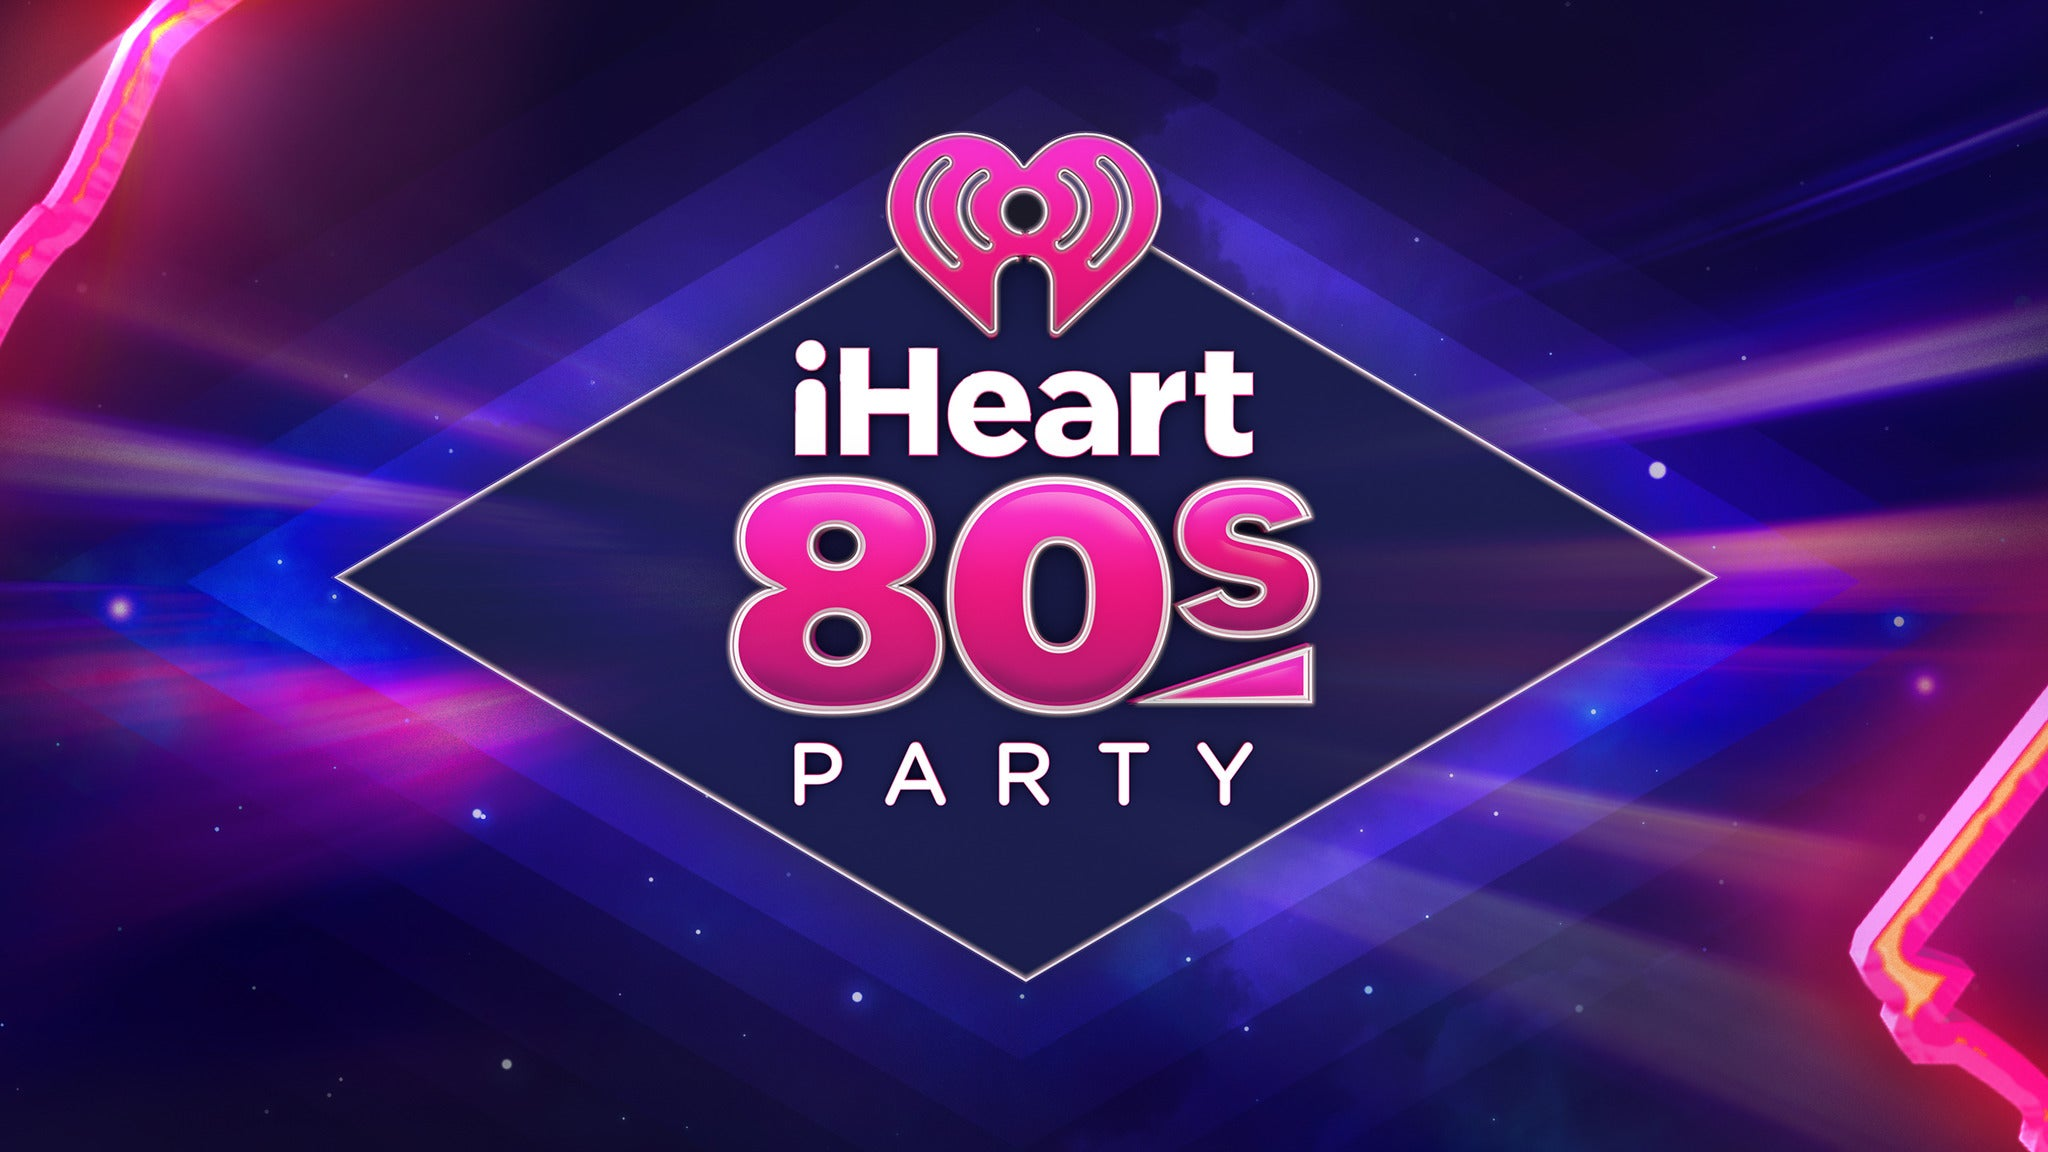 iHeart80s Party at SAP Center at San Jose